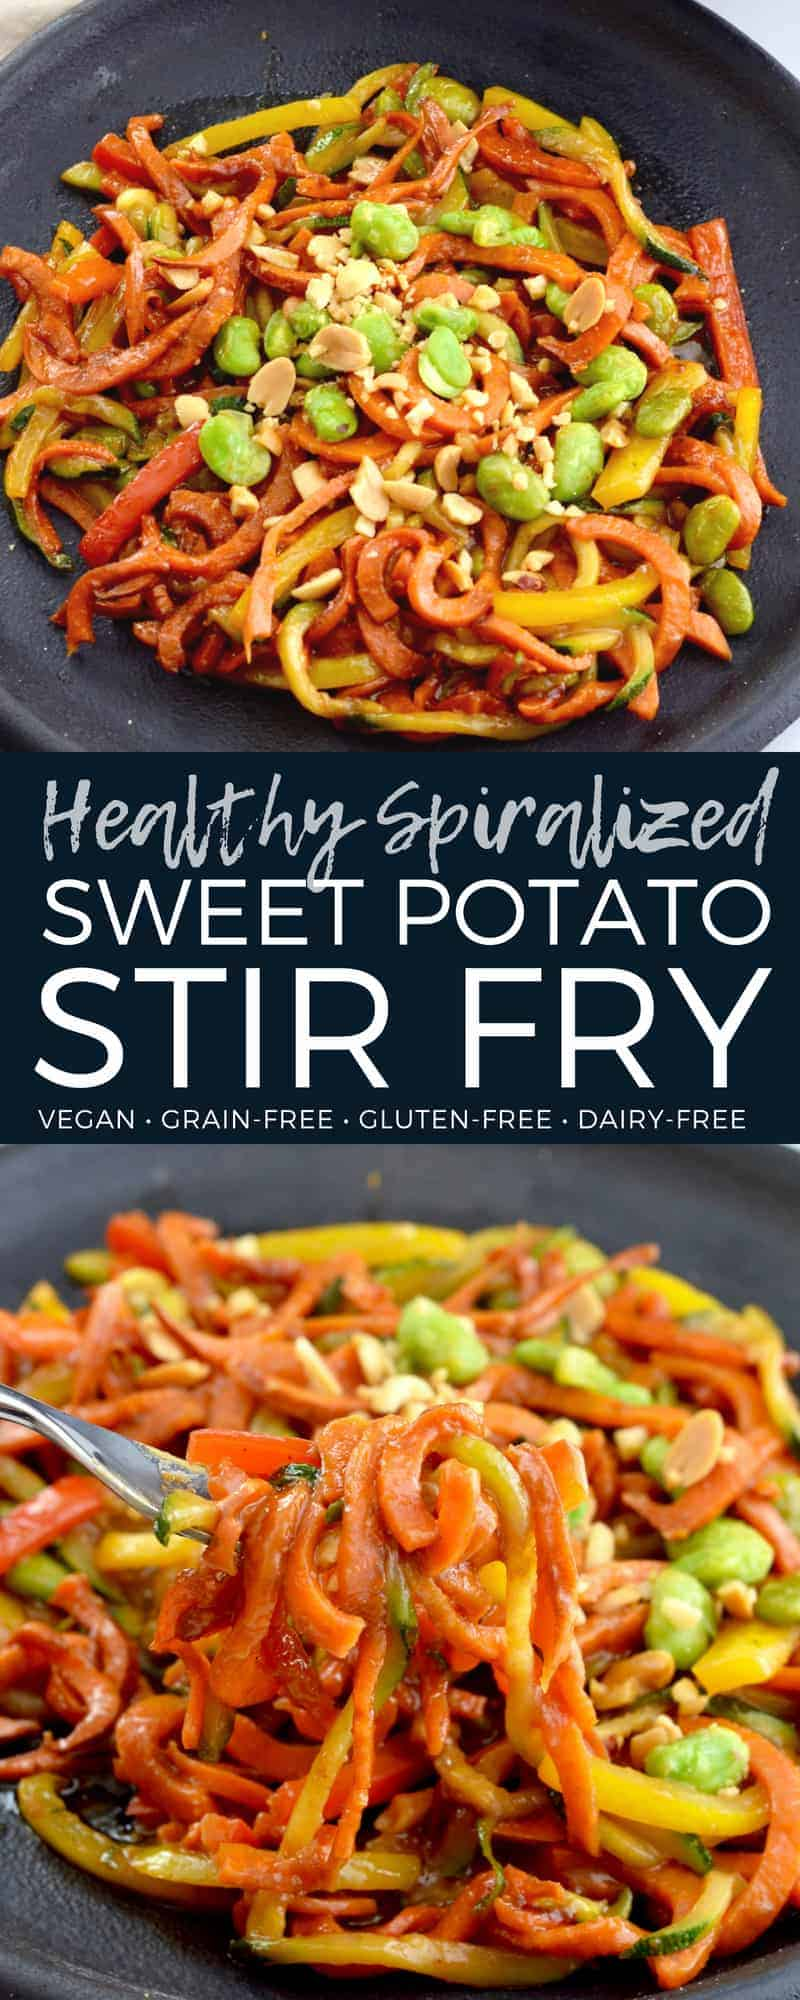 This healthy Spiralized Sweet Potato Stir Fry is a veggie-lovers dream! Spiralized vegetables are stir-fried in a sweet hoisin peanut sauce that is so delicious you will want to lick the bowl clean! This amazing dinner recipe is ready in 20 minutes and is vegan & gluten-free! A great meatless main dish recipe!  #spiralized #sweetpotato #glutenfree #vegan #dairyfree #stirfry #healthy #maindish #easy